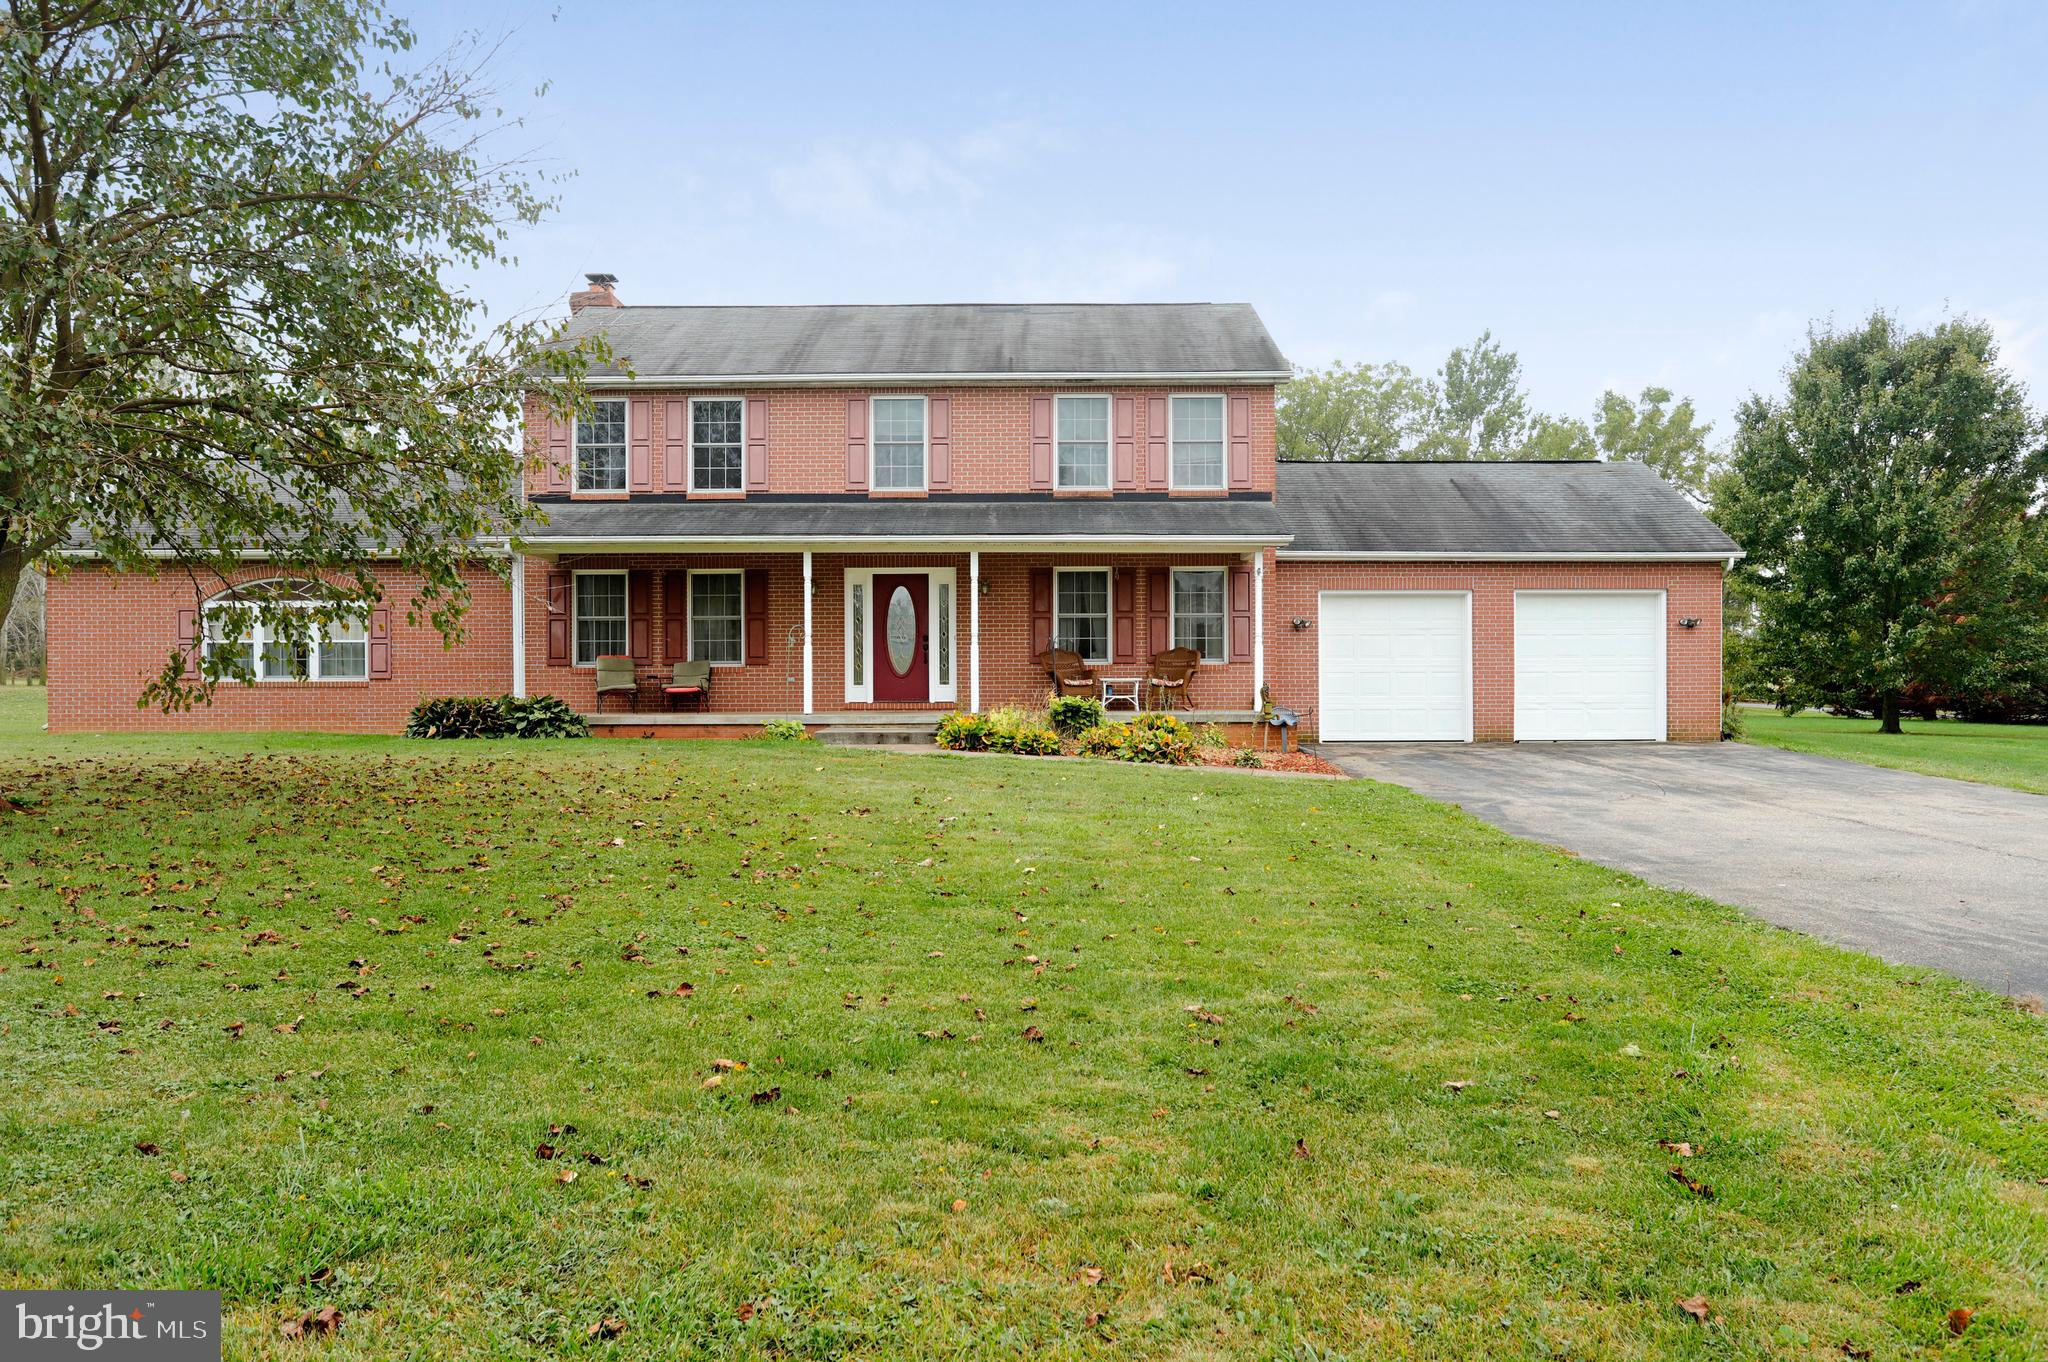 20607 RENO MONUMENT ROAD, BOONSBORO, MD 21713